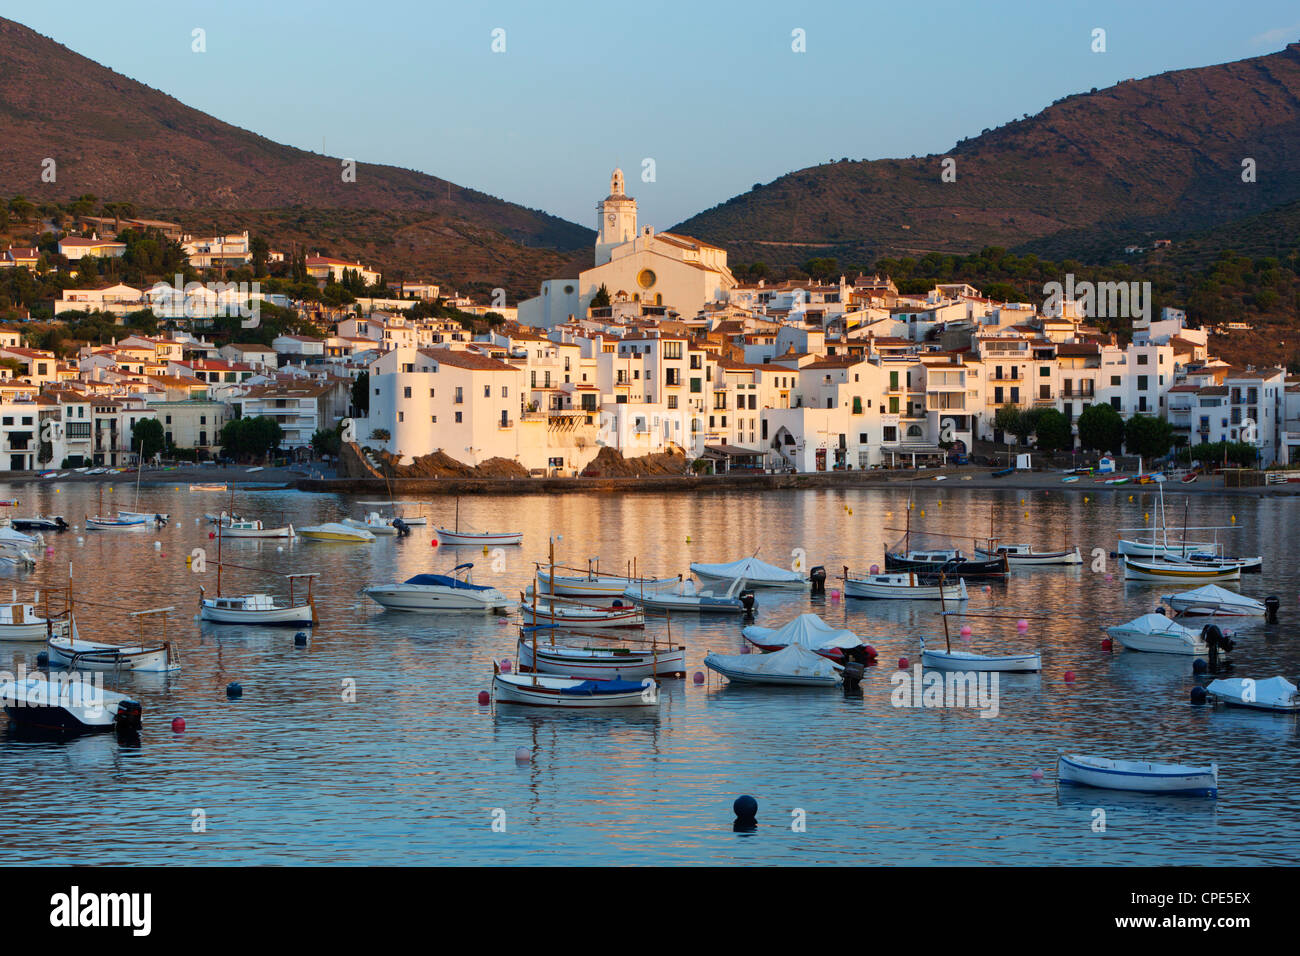 Harbour and town, Cadaques, Costa Brava, Catalonia, Spain, Mediterranean, Europe - Stock Image